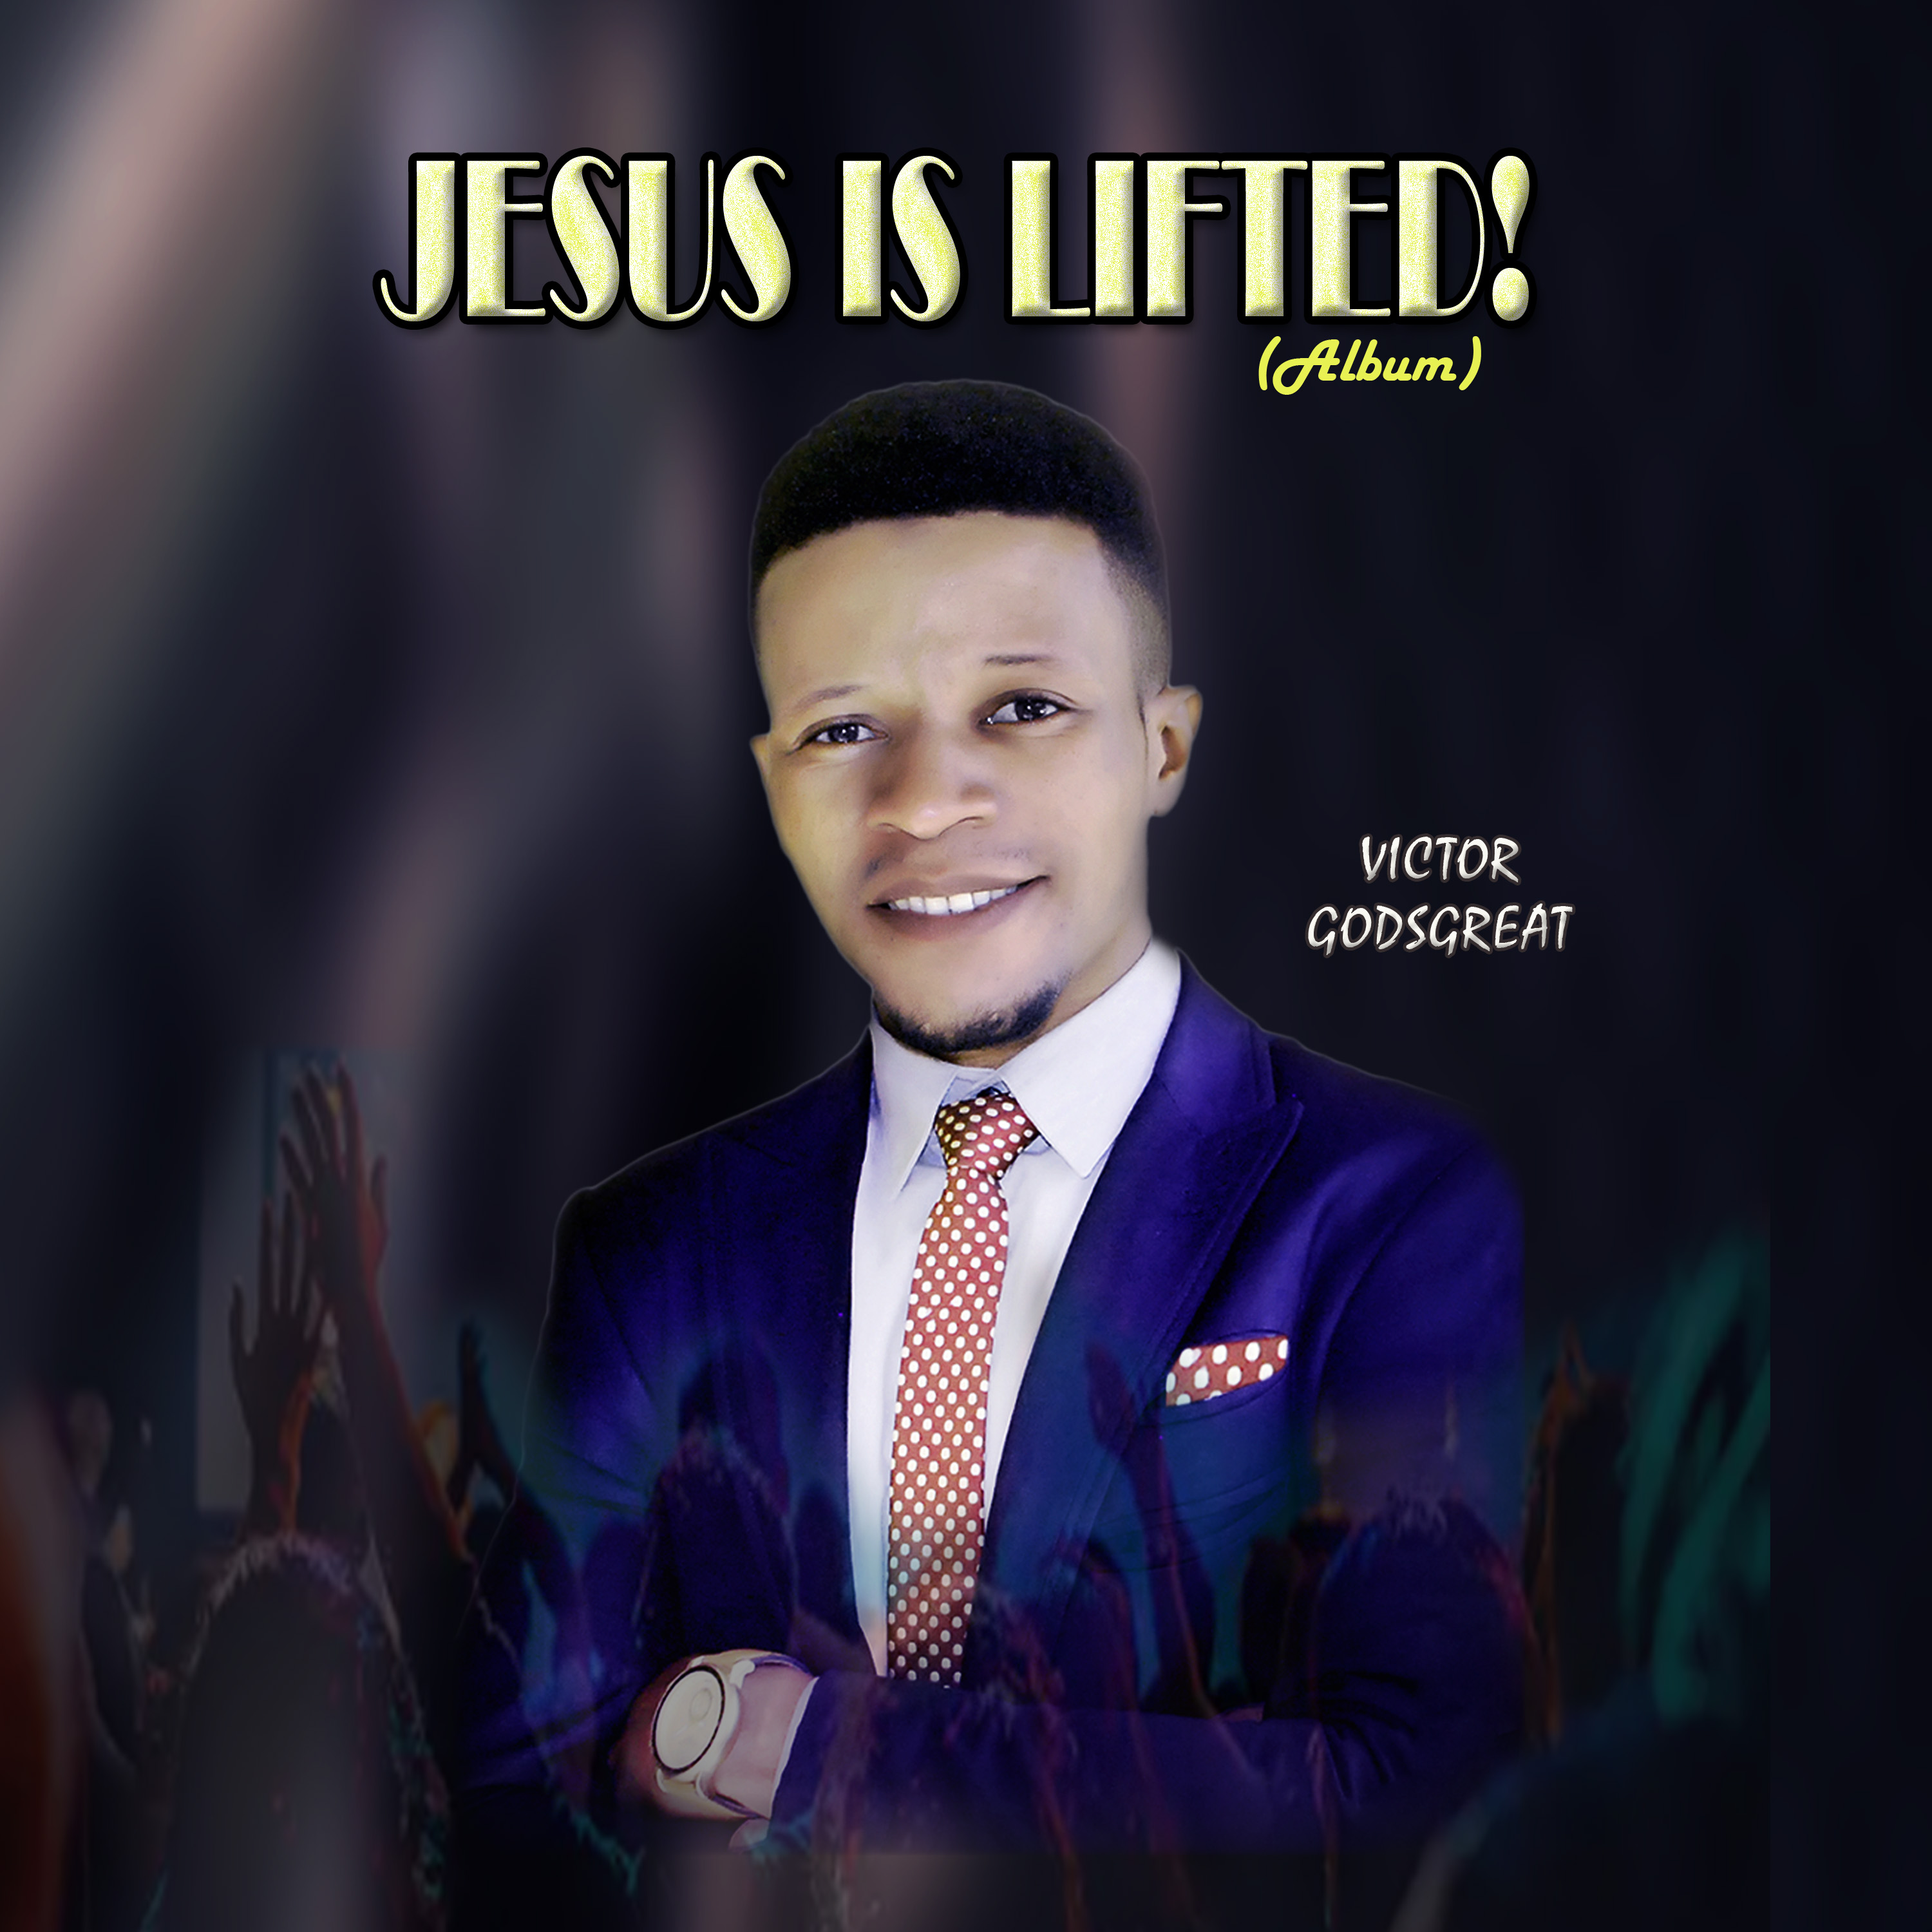 HELP ME TO KNOW YOU LORD - Victor Godsgreat